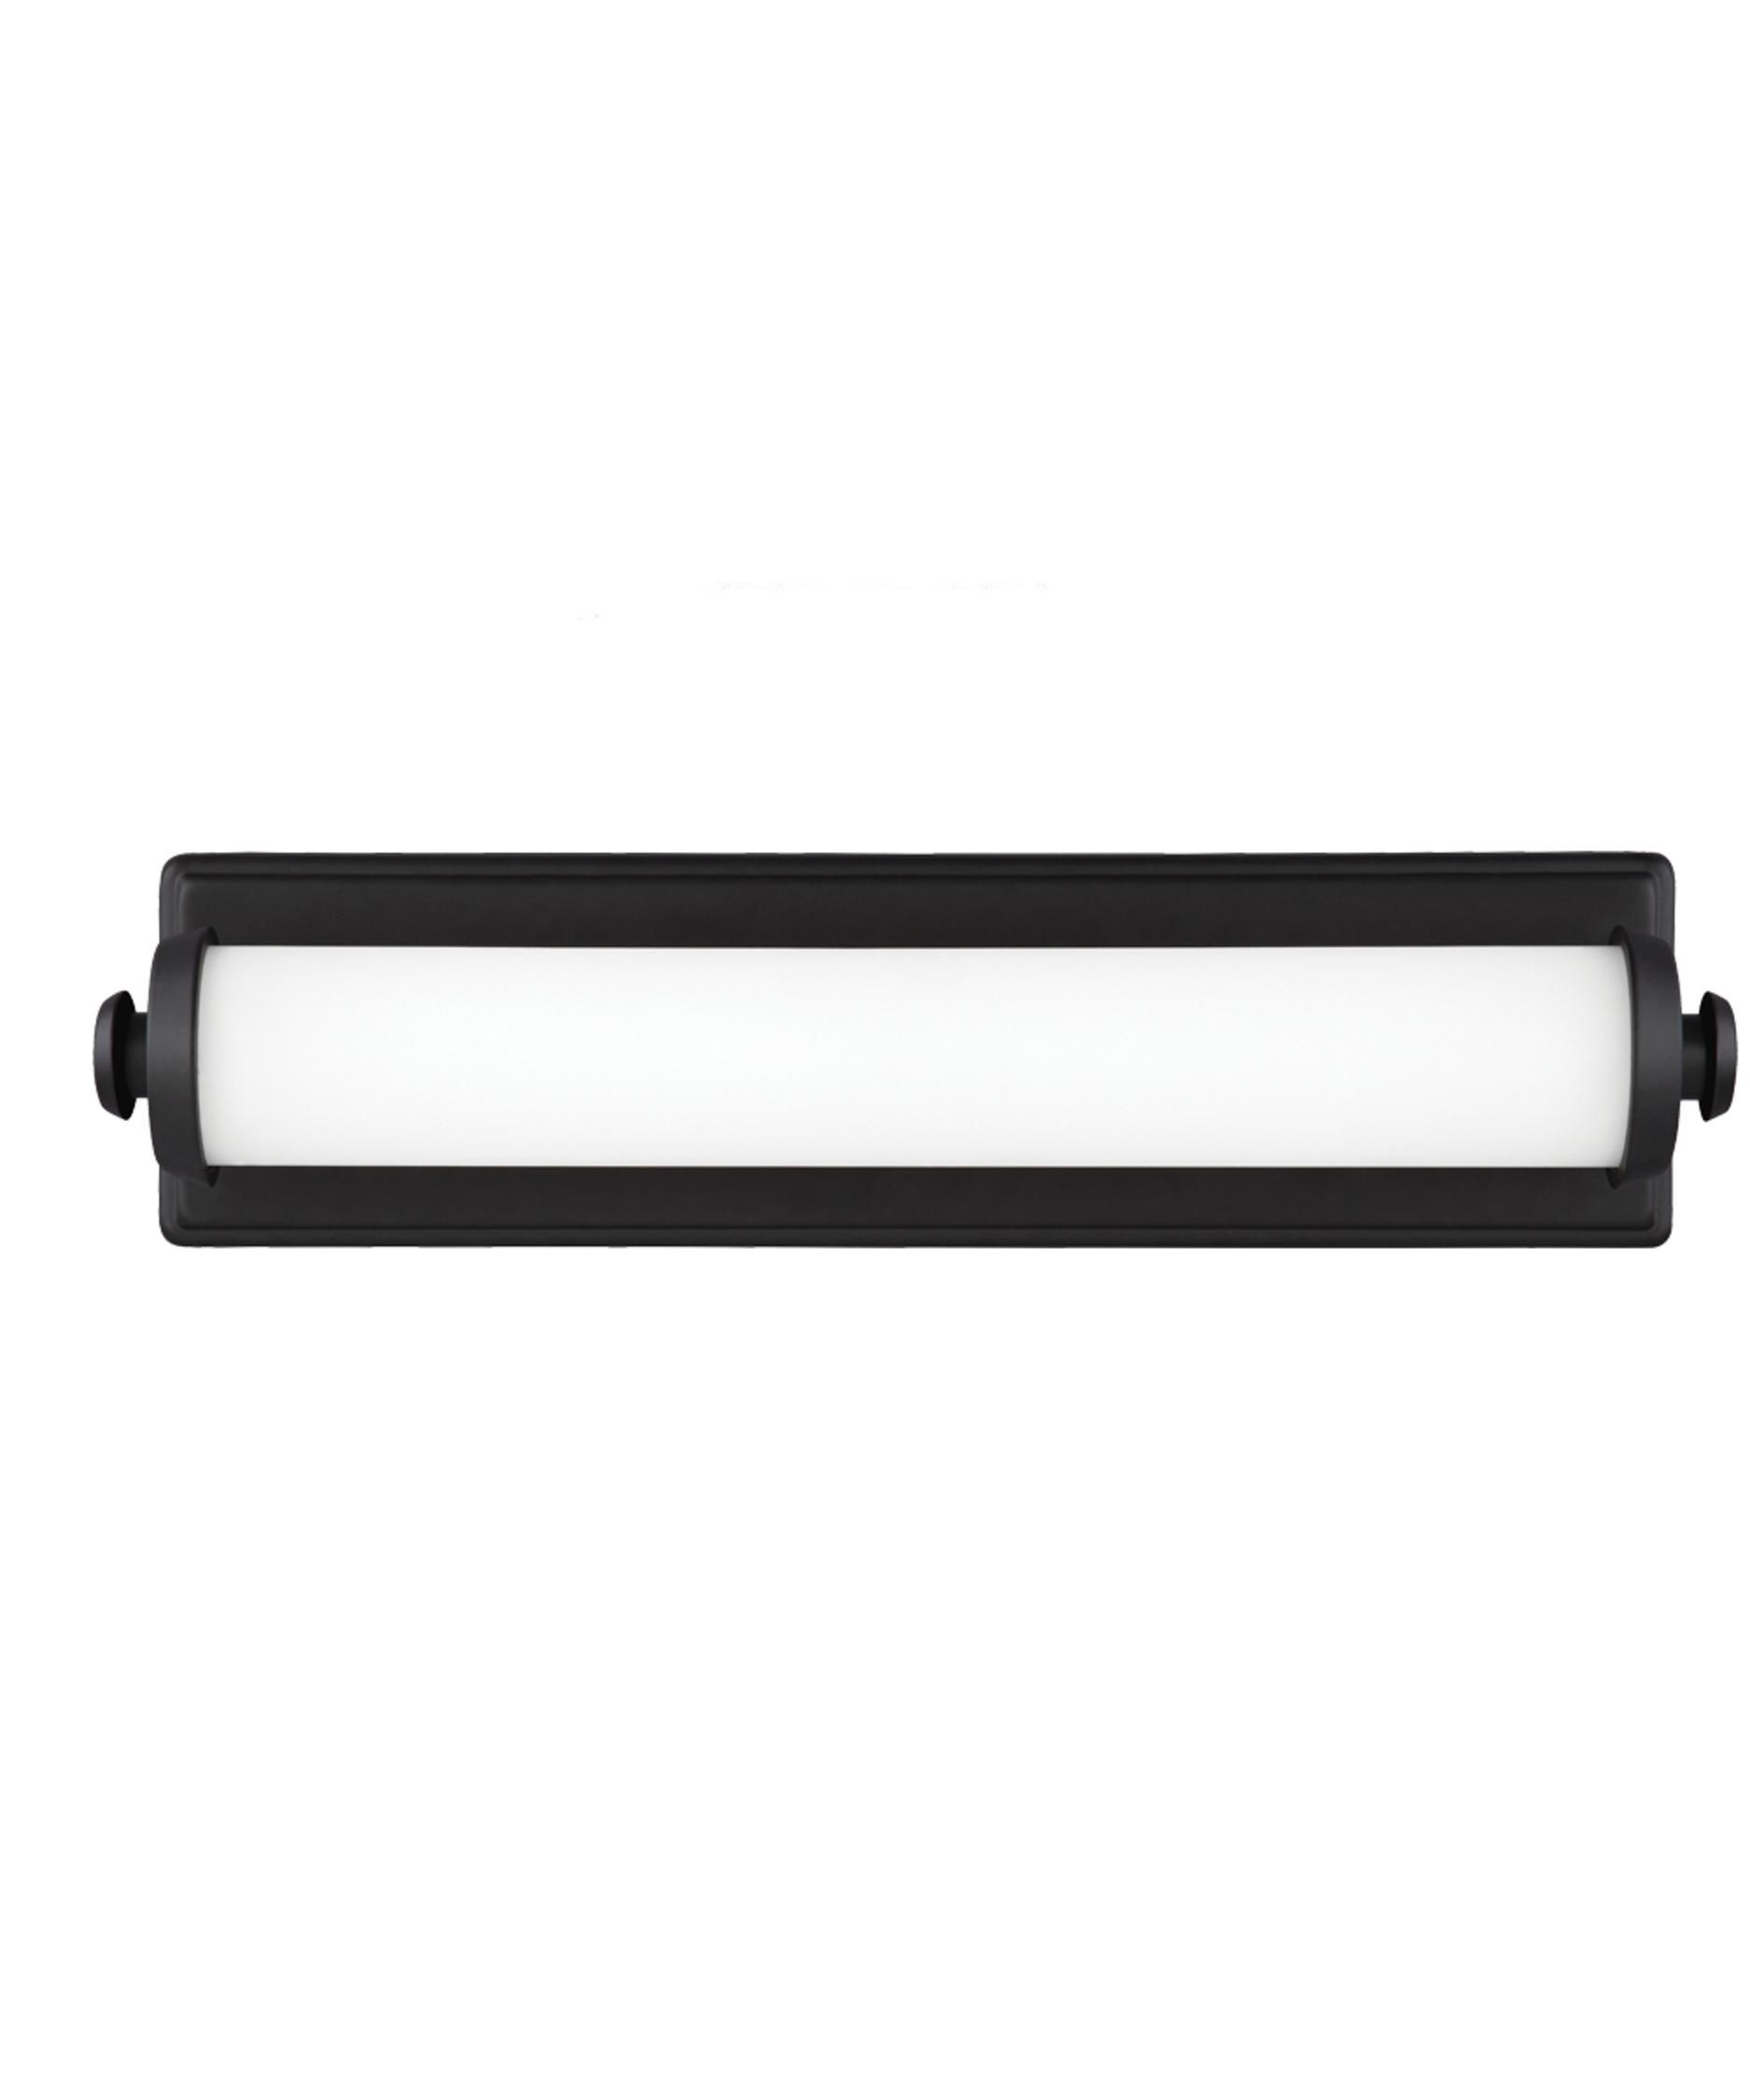 wall outlet lights mount ceiling with mirror cheap bathroom bath fixture and light fixtures vanity strip lamp